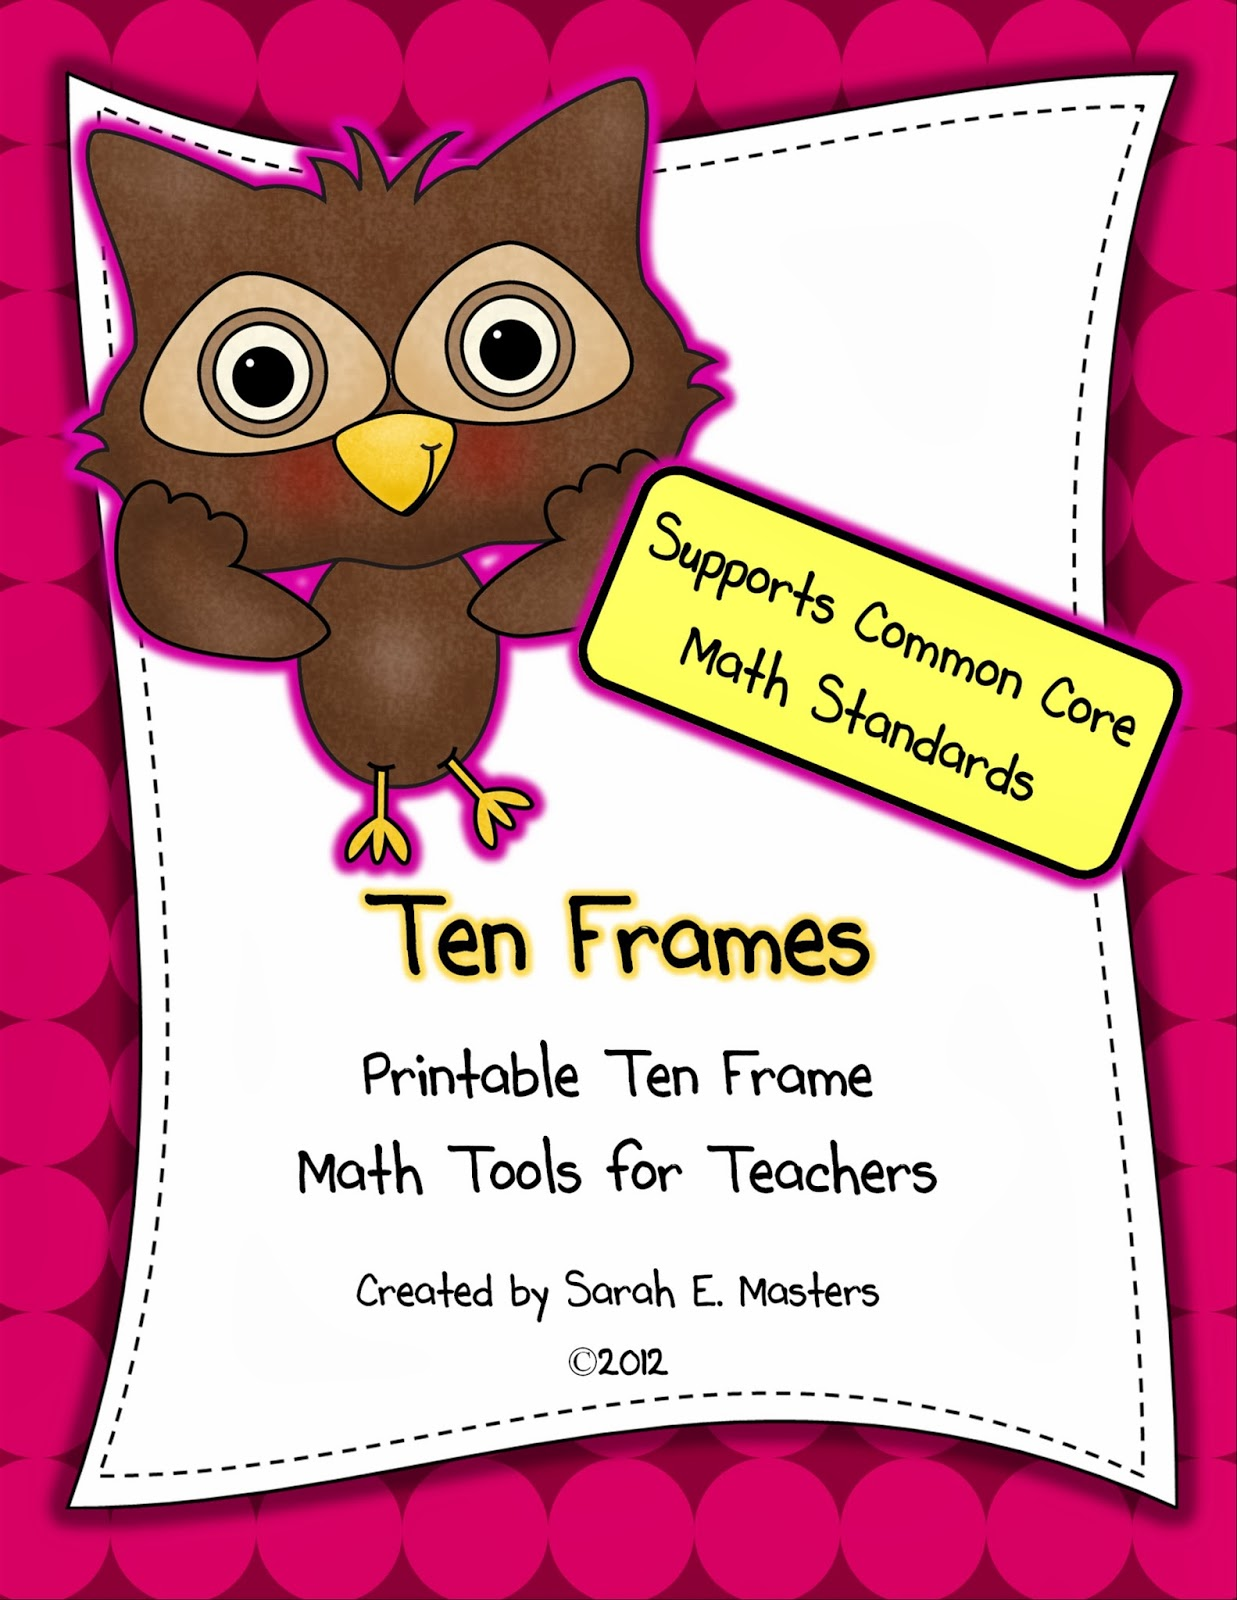 http://www.teacherspayteachers.com/Product/Ten-Frame-Math-Tools-to-Help-Support-the-Common-Core-FREE-312020